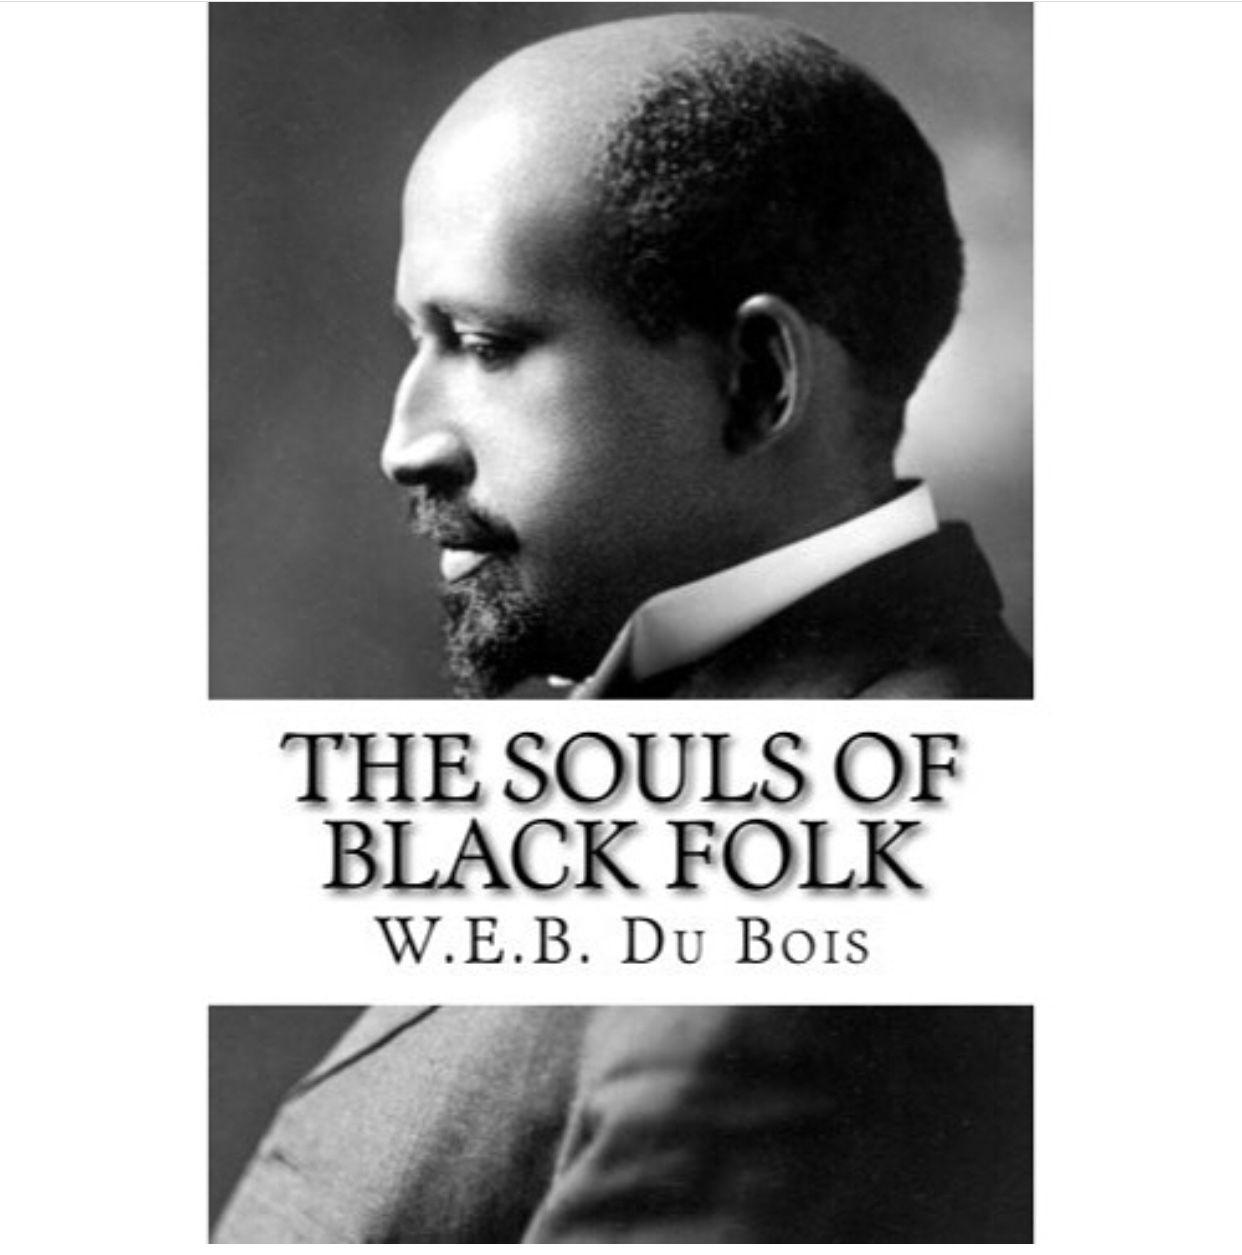 Pin by carissa tyus on cultured black history books